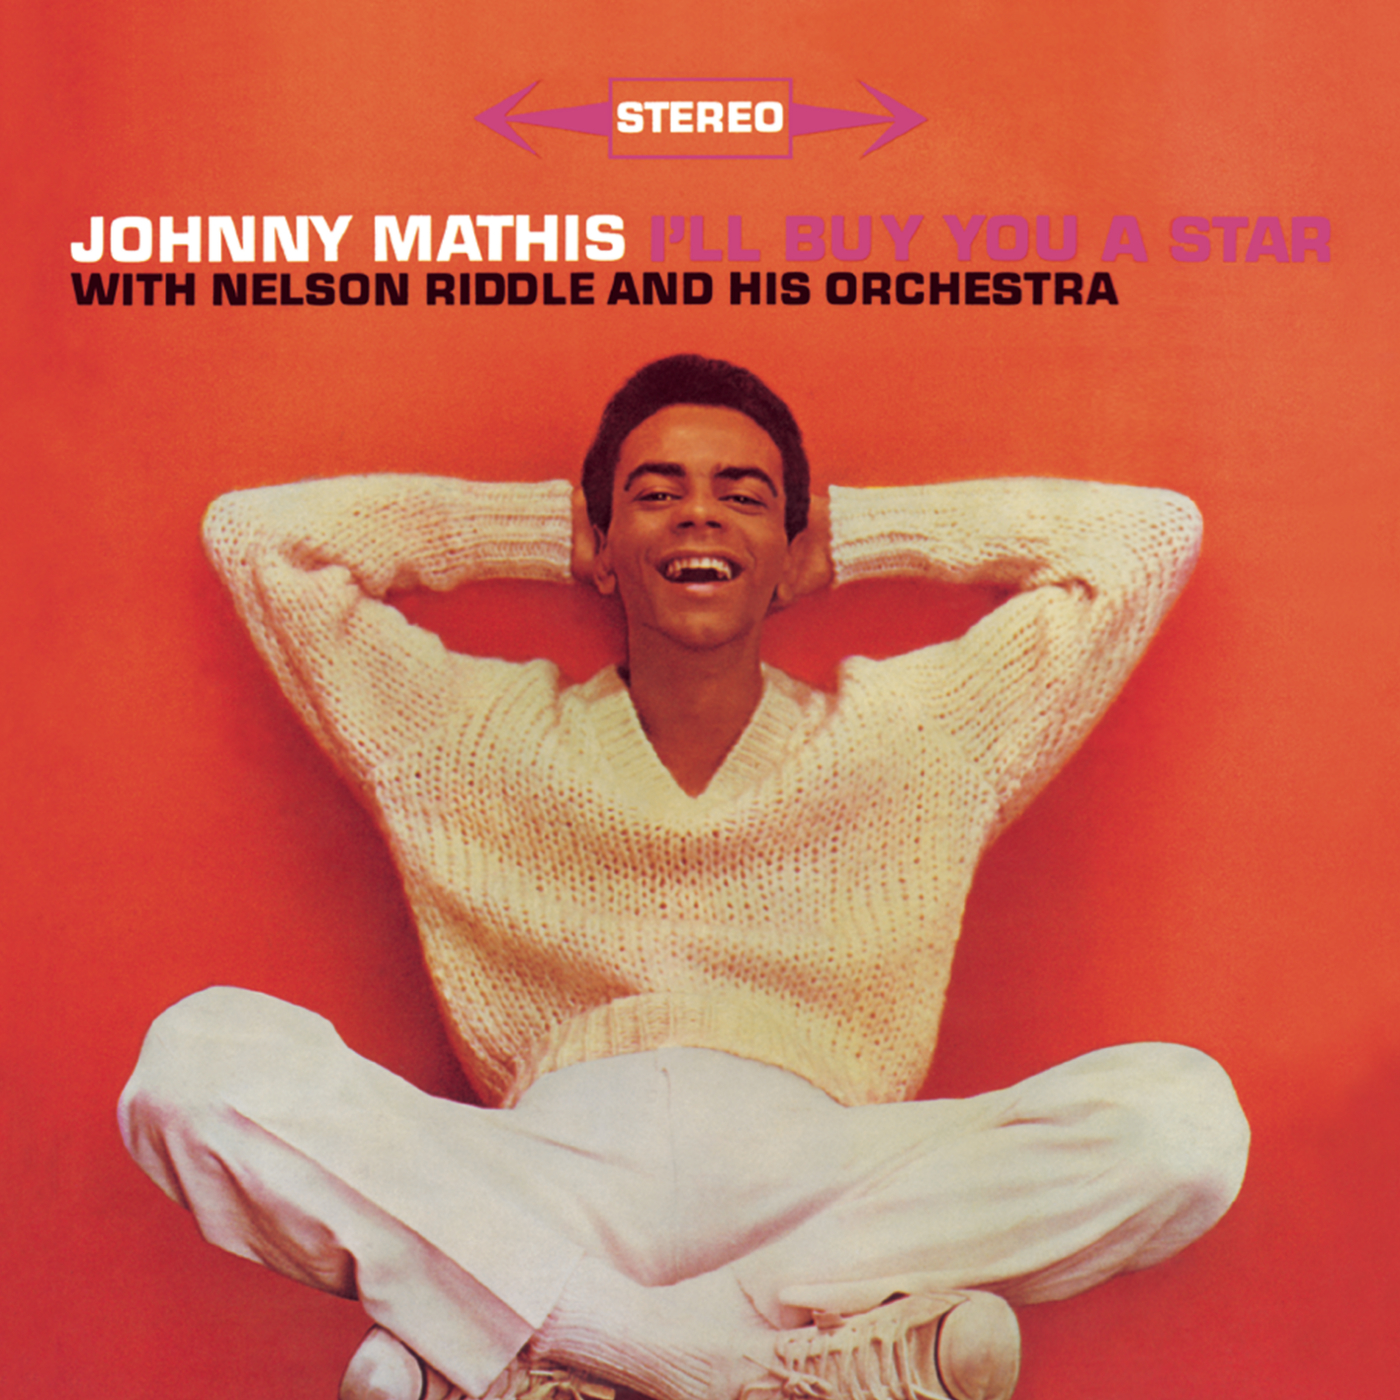 I'll Buy You a Star - Johnny Mathis